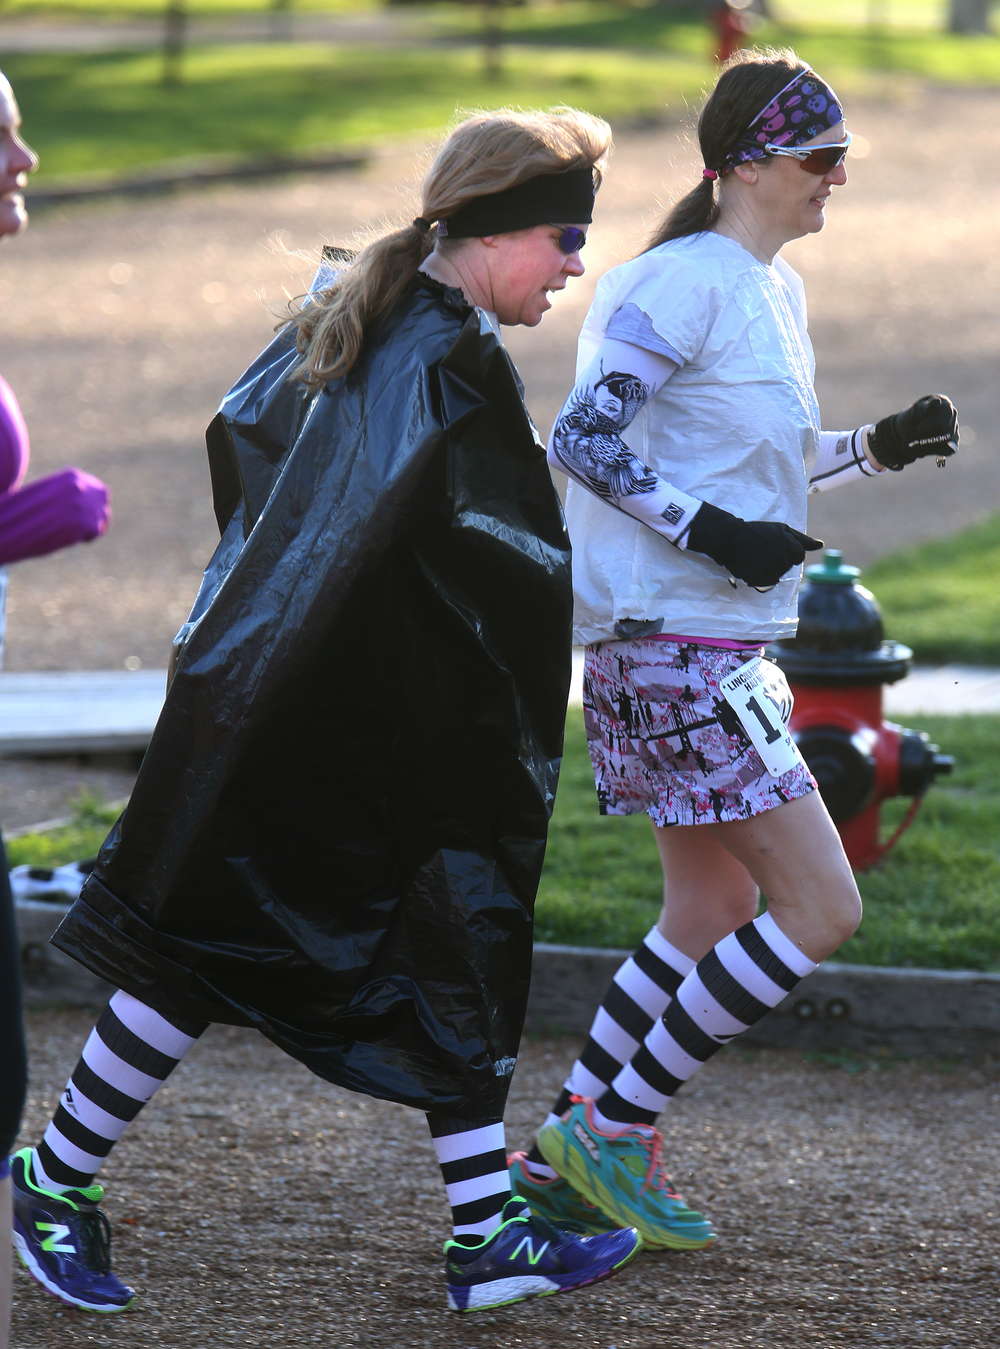 An oversized plastic garbage bag complimented this runner's striped socks as she made her way through the Lincoln Home neighborhood early Saturday morning. David Spencer/The State Journal Register